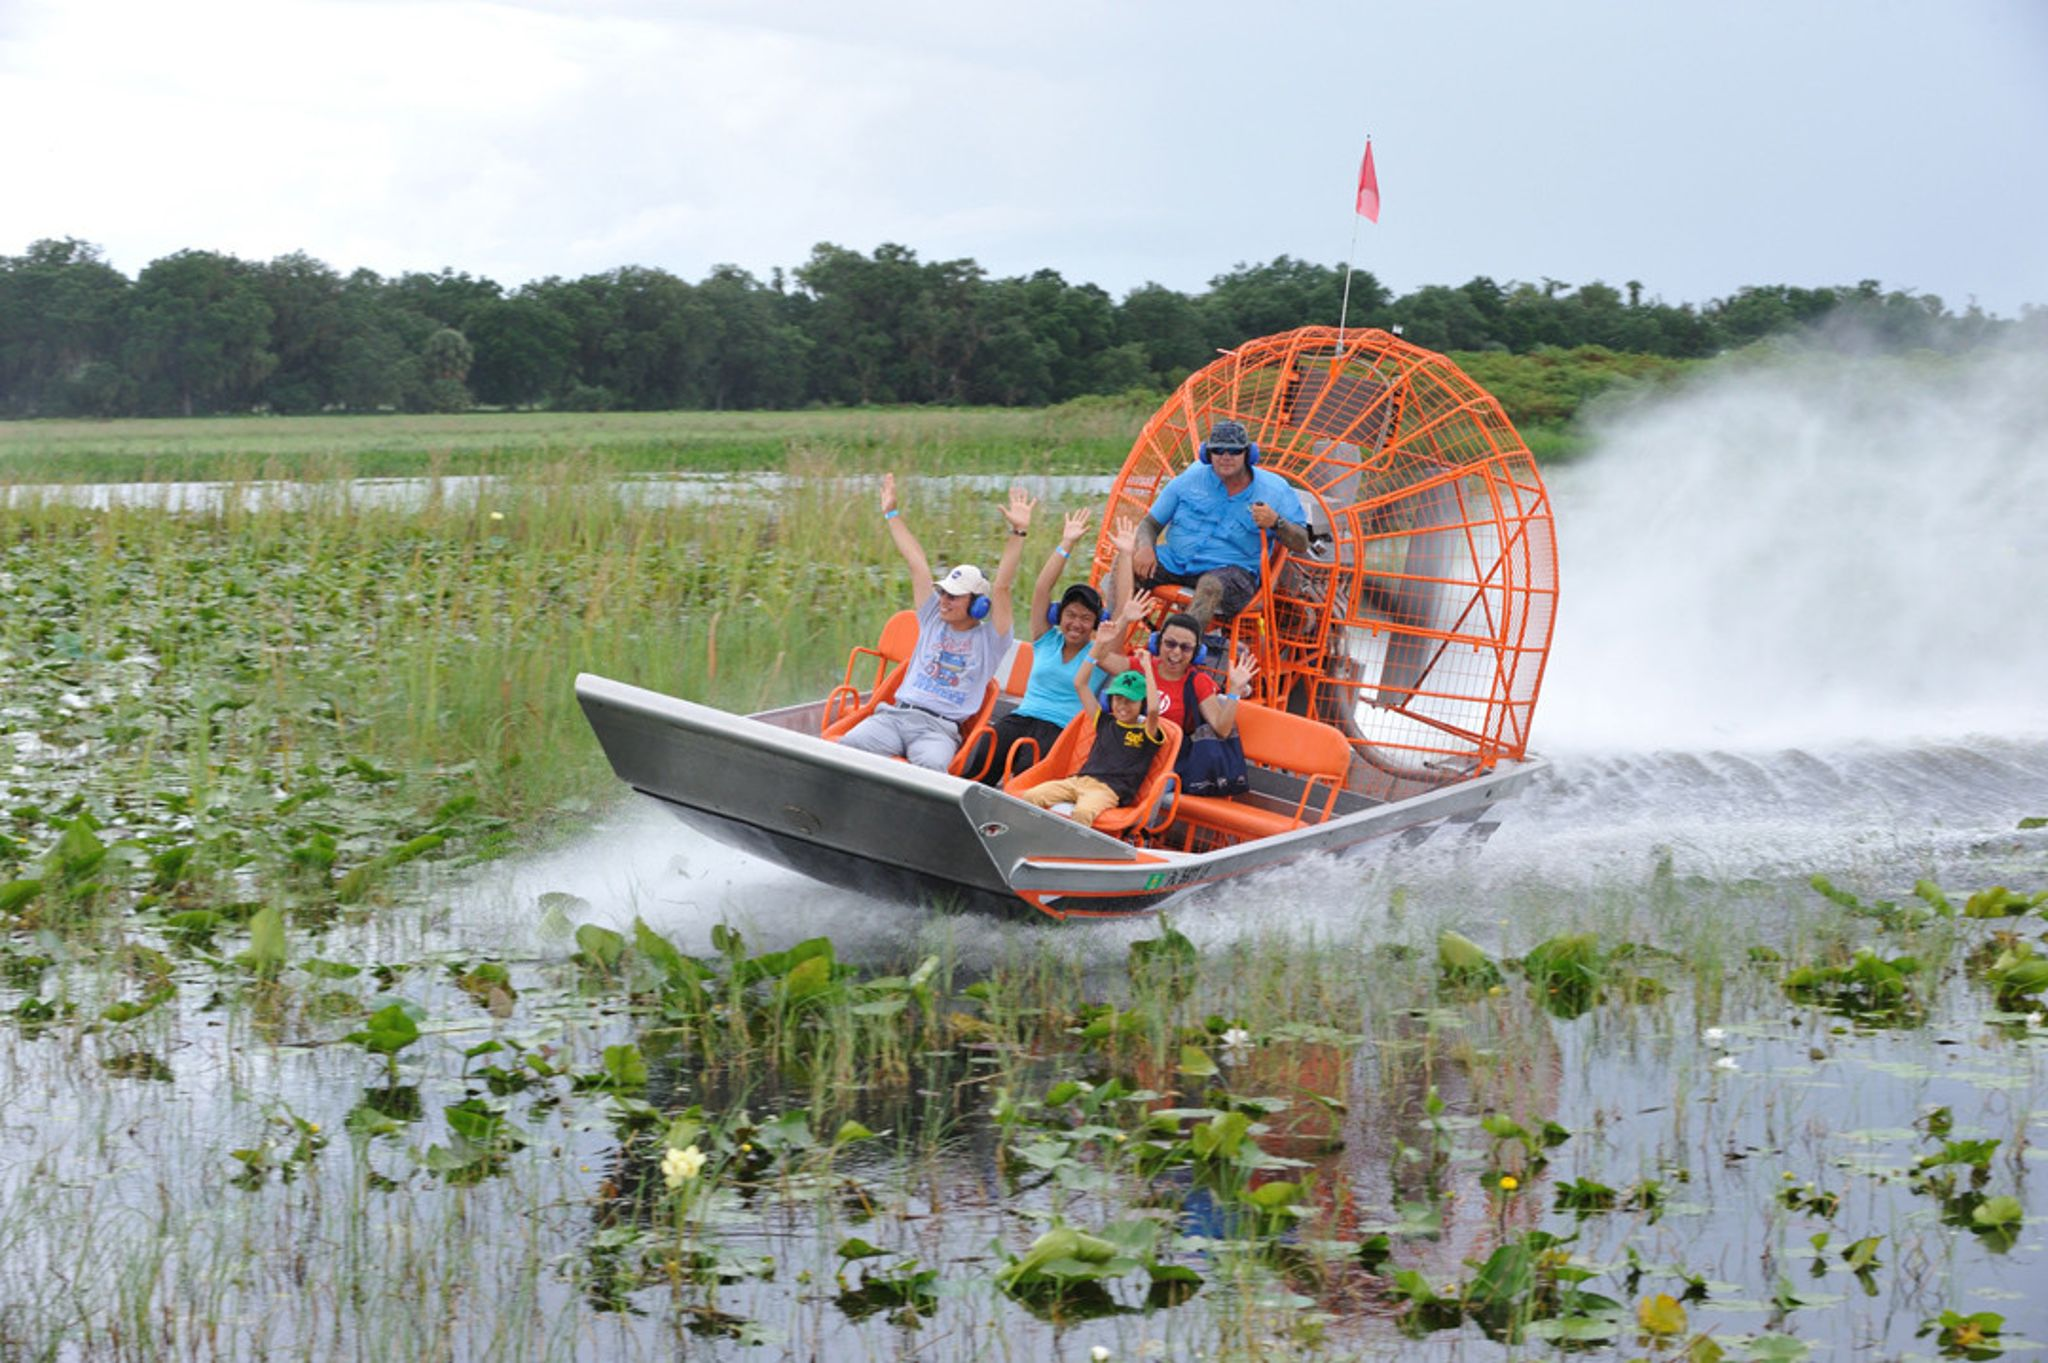 Guests enjoy an airport ride on the St. Johns River.